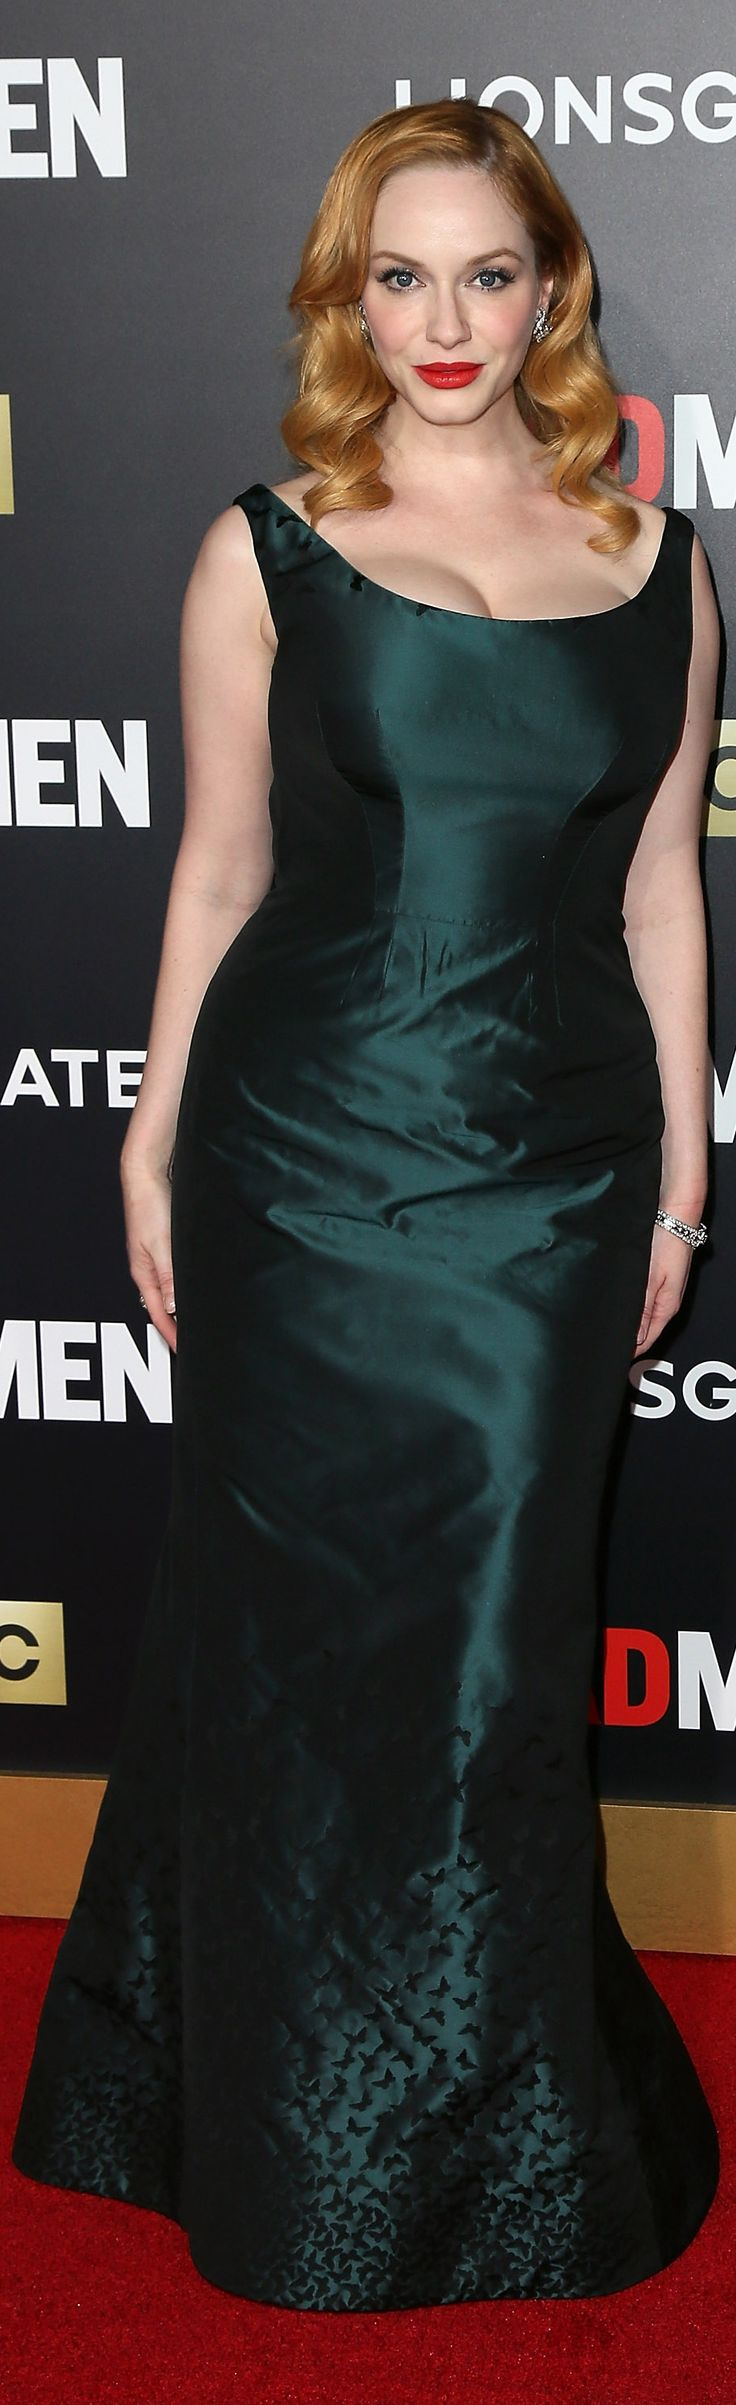 Christina Hendricks's Zac Posen gown played tricks on the red carpet!